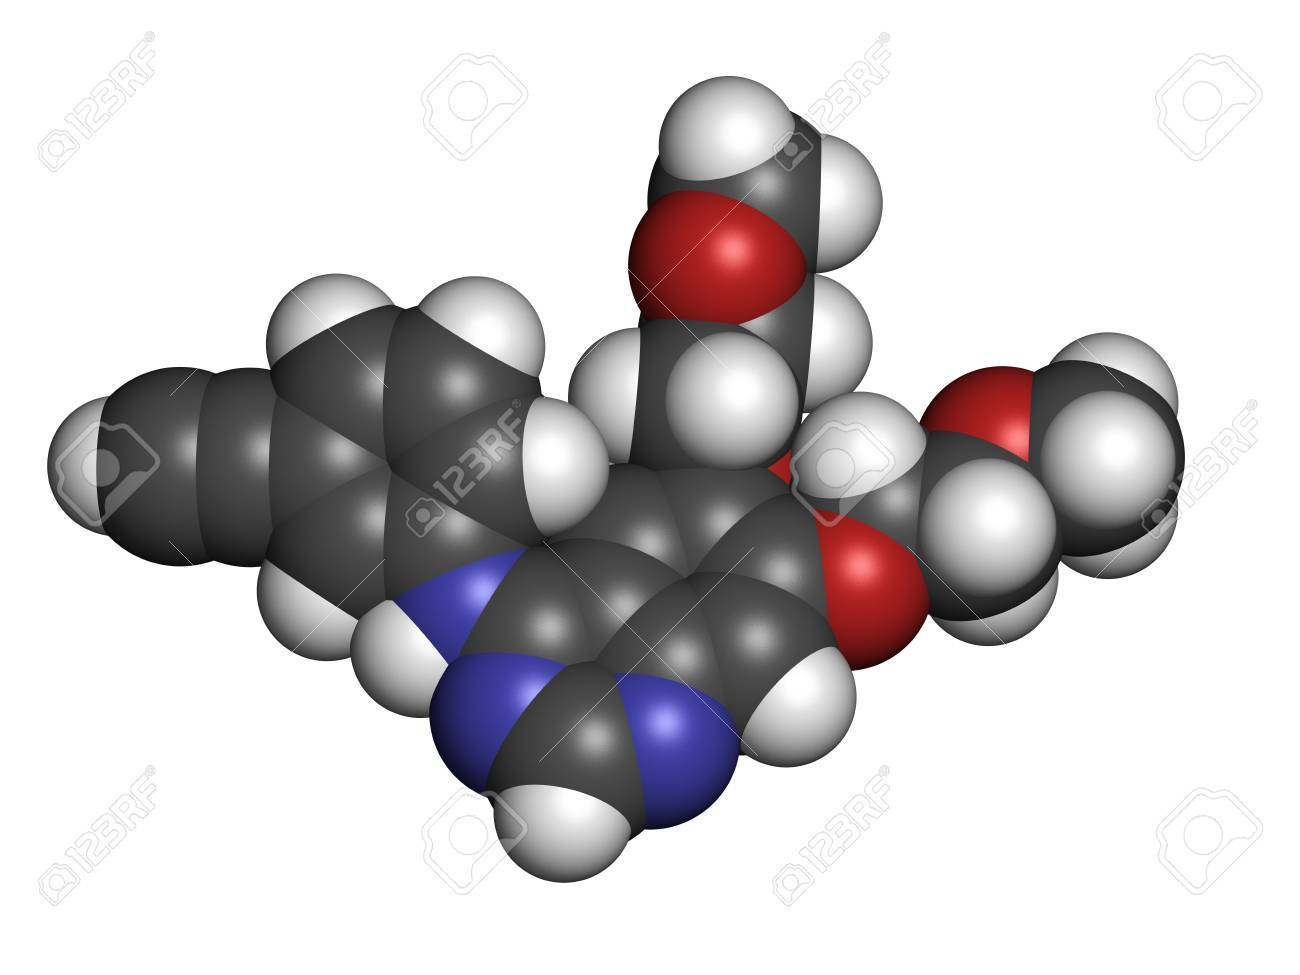 Erlotinib cancer drug, chemical structure. Atoms are represented as spheres with conventional color coding: hydrogen (white), carbon (grey), nitrogen (blue), oxygen (red). Stock Photo - 21339692